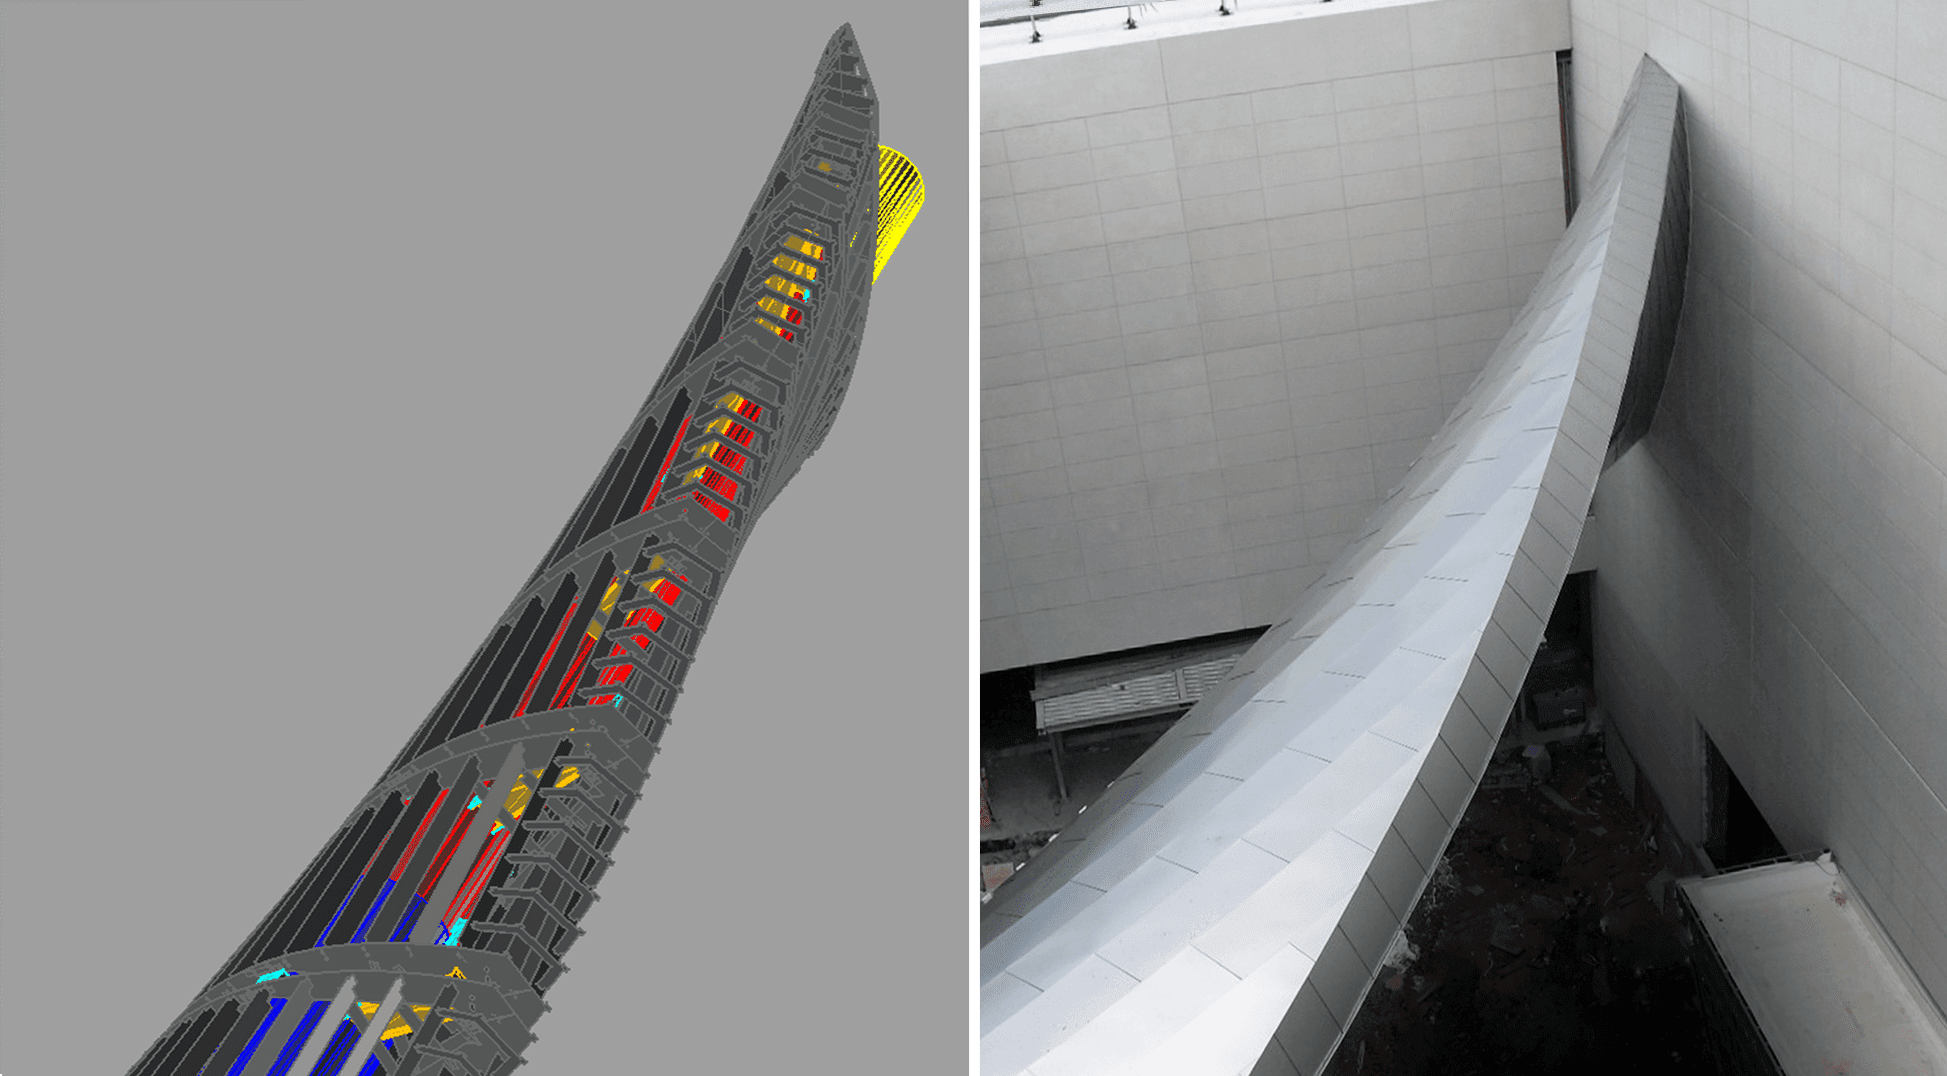 CAD View of the moebius structure Zahner designed compared with the installed view.